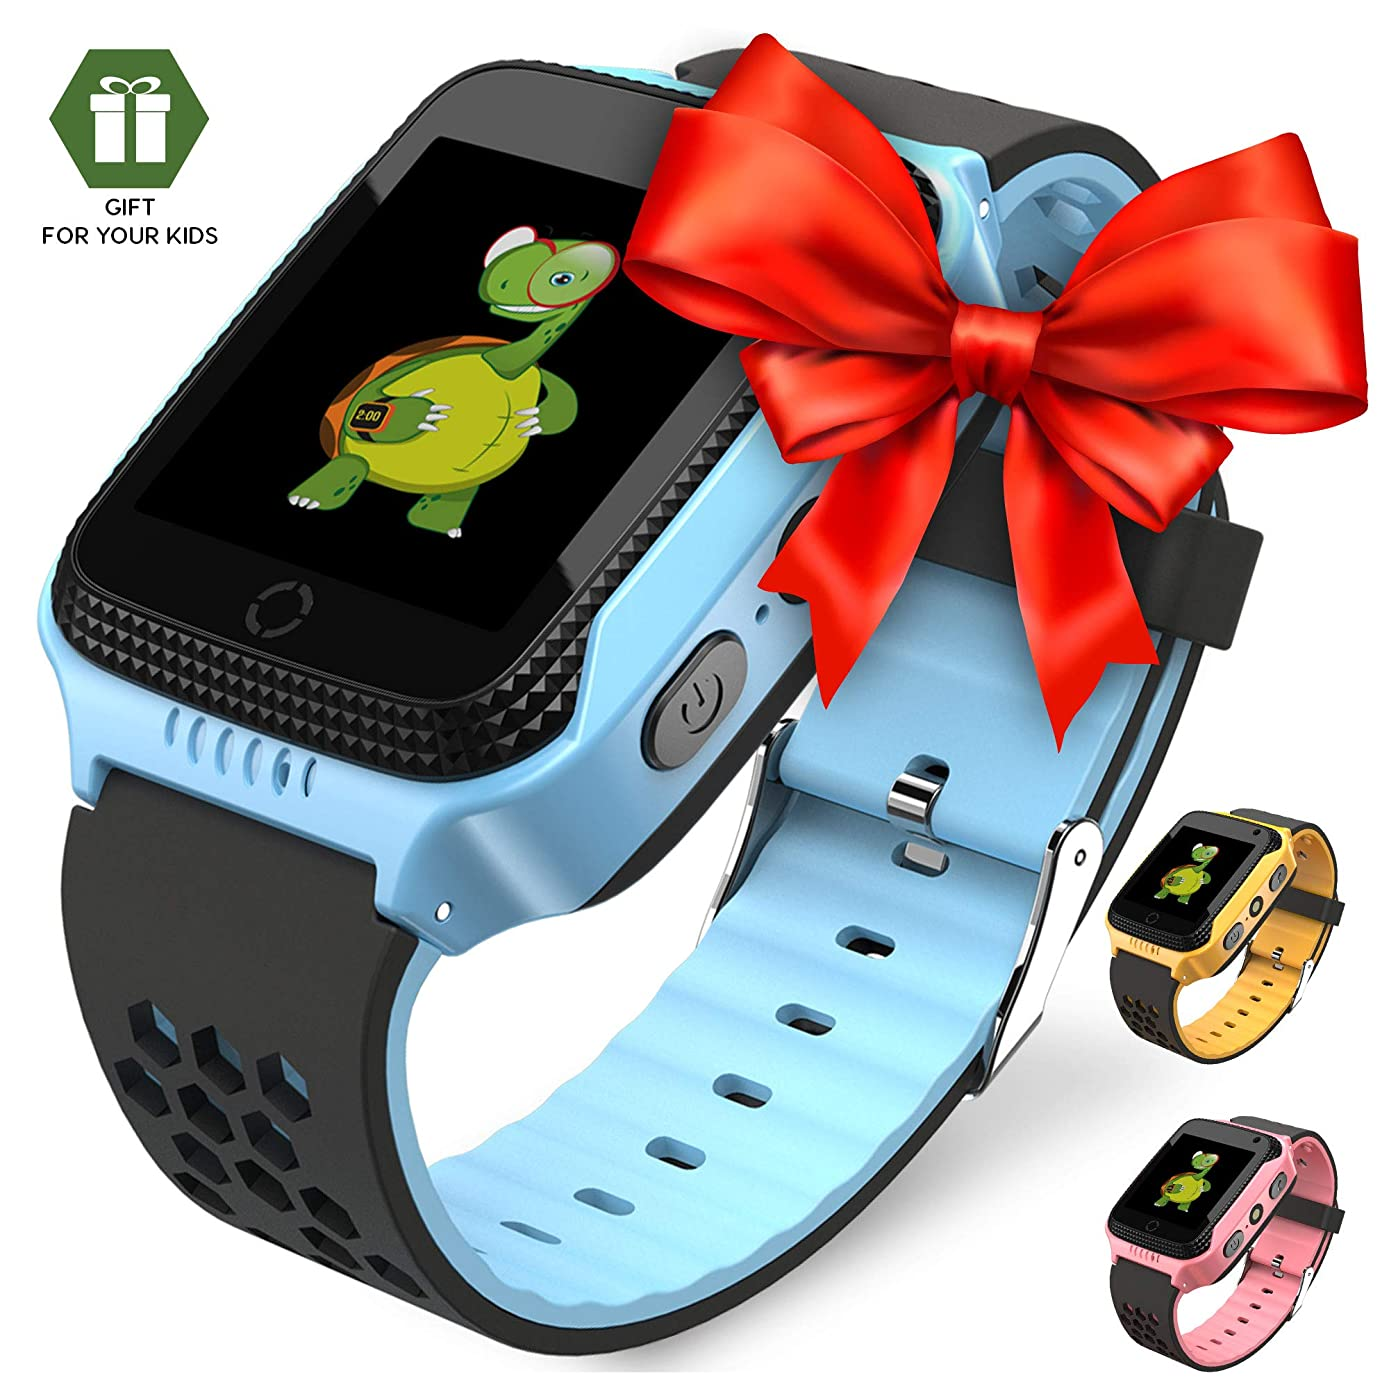 【2019 Update】 Smart Watch for Kids - Smart Watches for Boys Smartwatch GPS Tracker Watch Wrist Android Mobile Camera Cell Phone Best Gift for Girls Children boy Pink Blue Yellow (Blue)